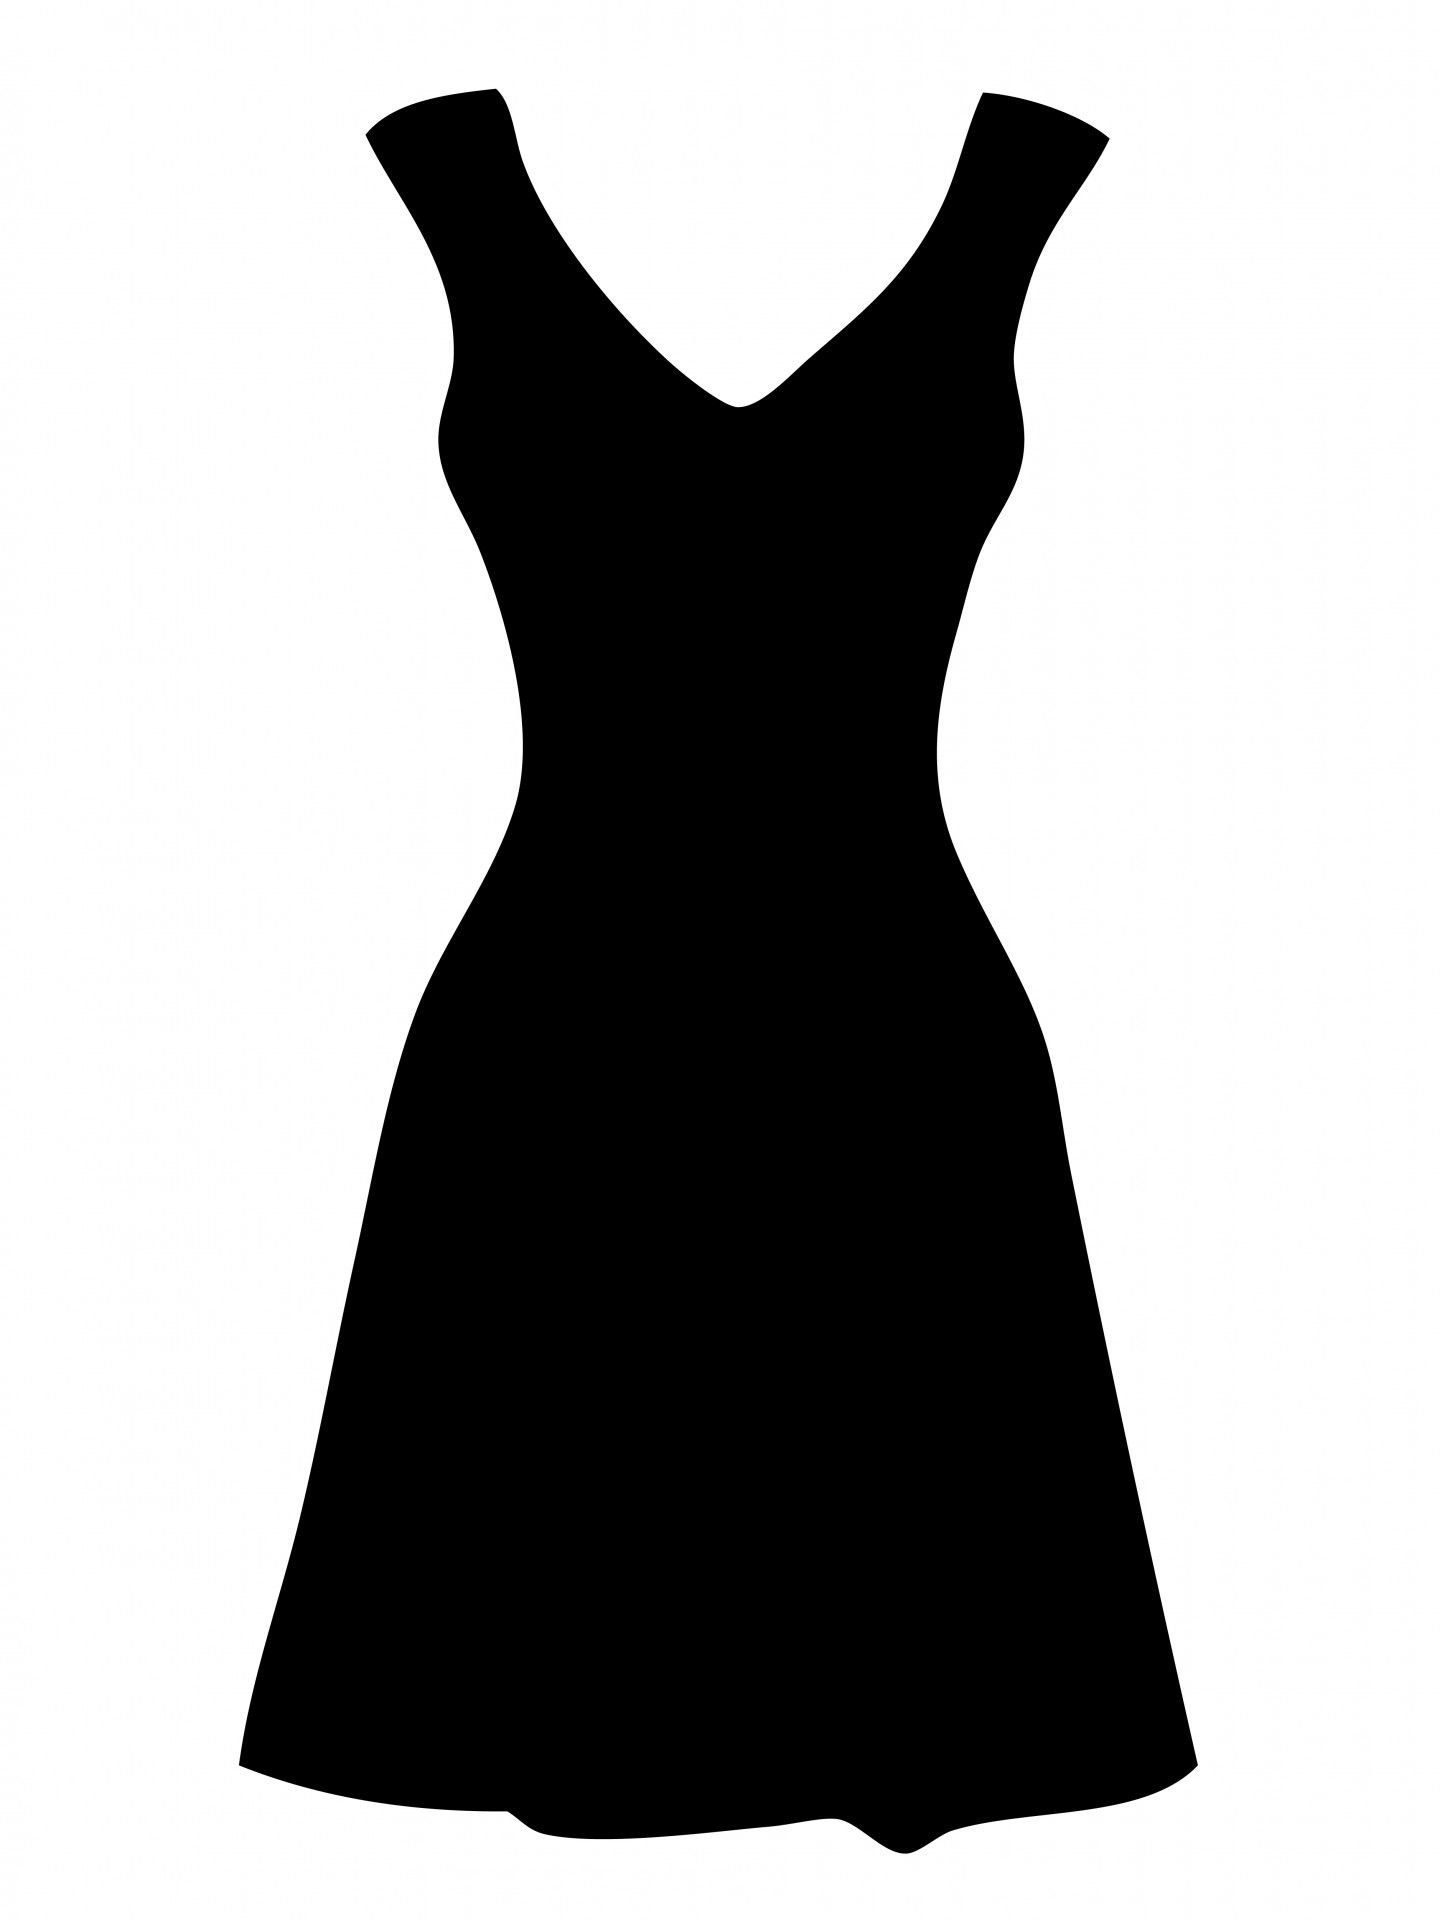 Free clipart dresses.